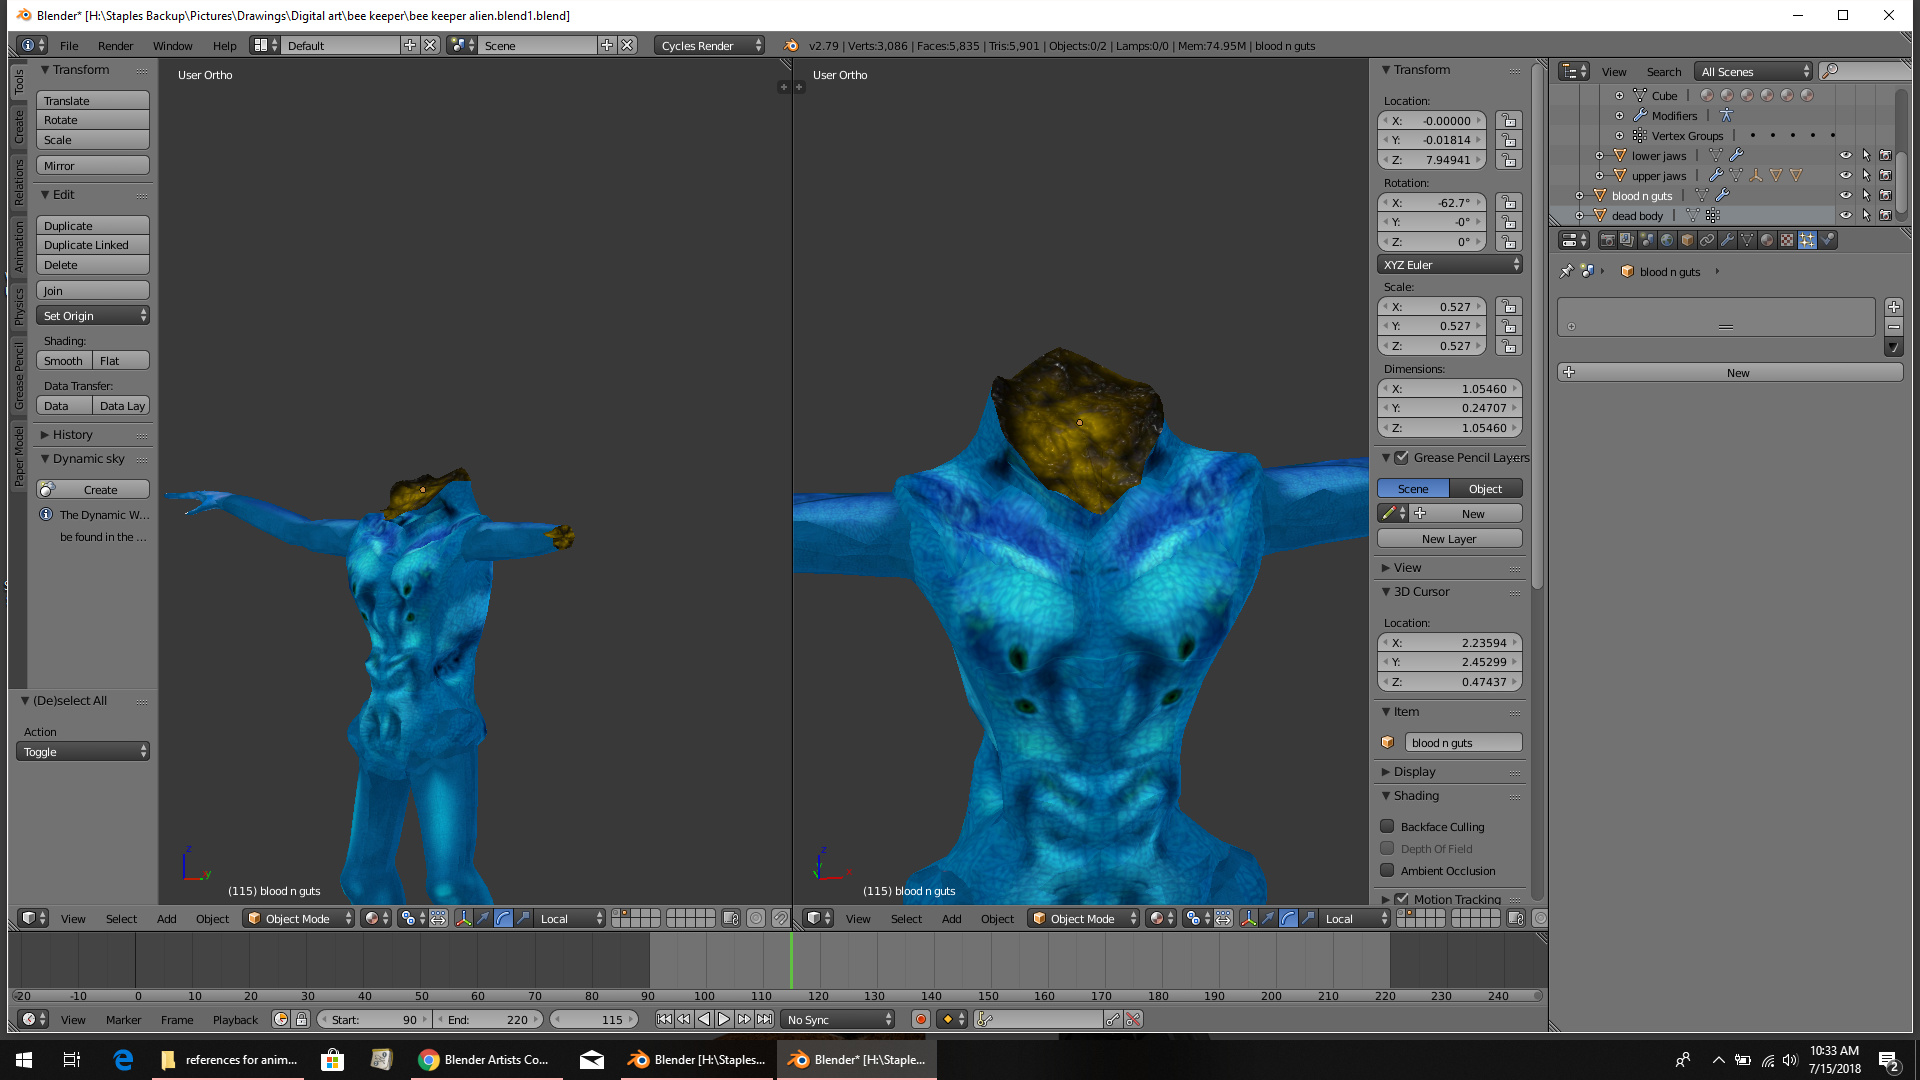 How Can I Animate Gore And Wounds On A Blender Character Animation And Rigging Blender Artists Community This is texture pack (7 jpgs) for 3d pbr materials format: how can i animate gore and wounds on a